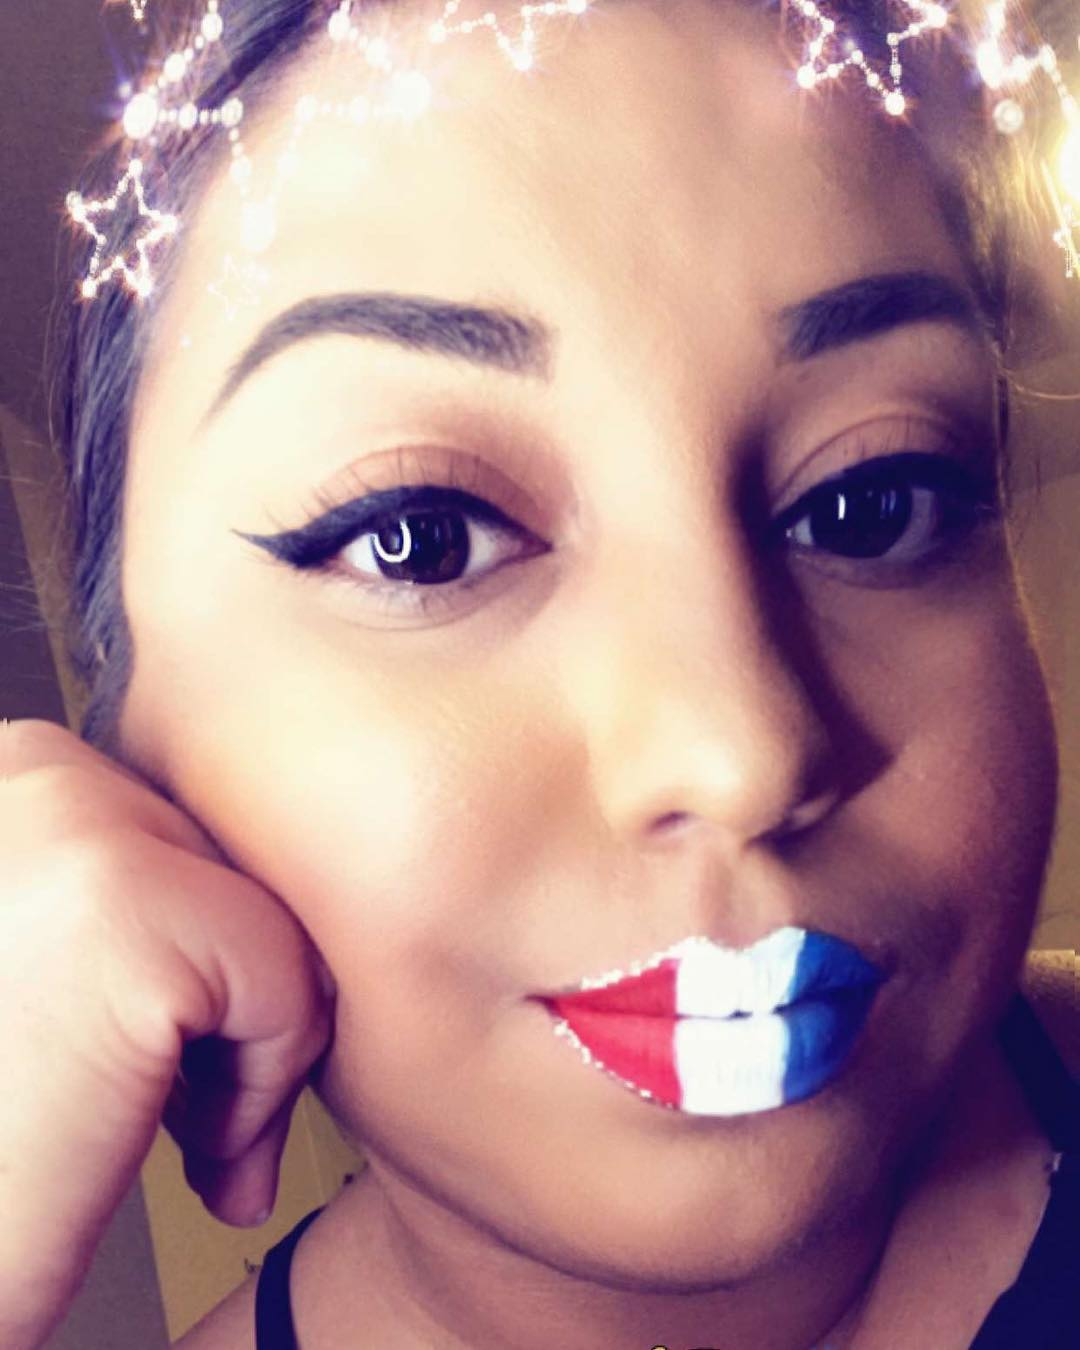 Lip Colored In Red, Blue And White